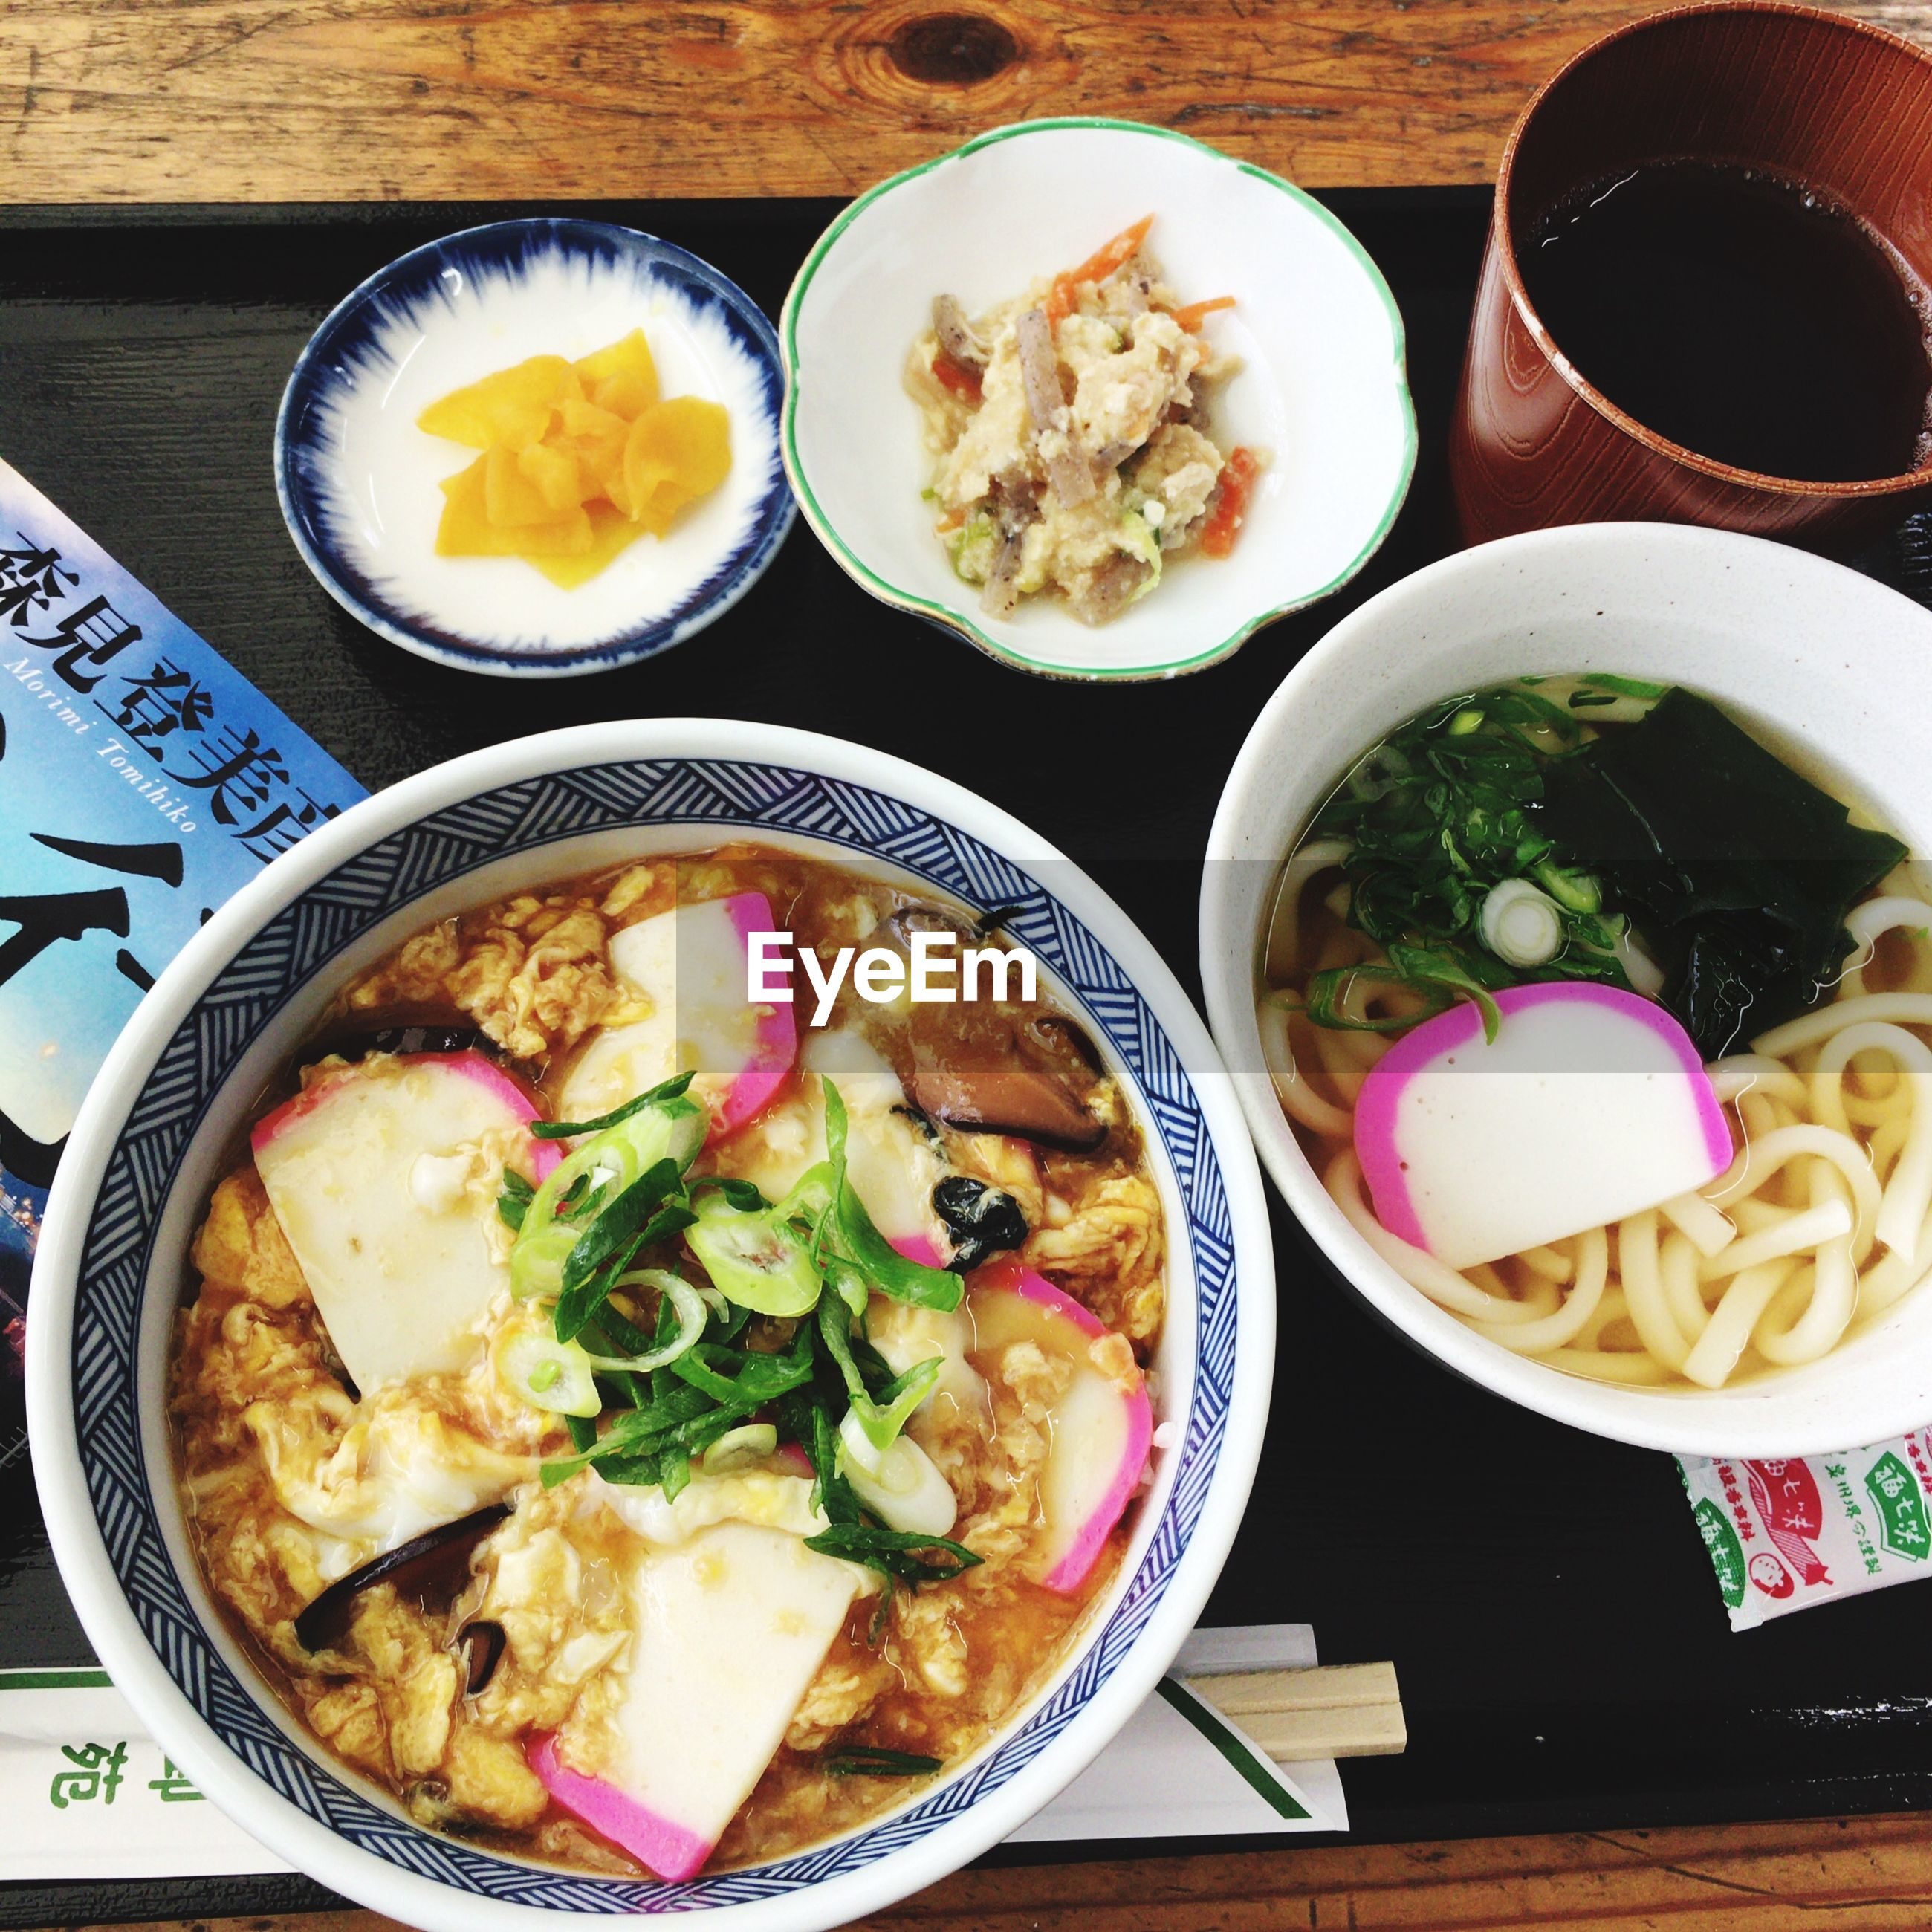 food and drink, food, ready-to-eat, healthy eating, freshness, table, asian food, indoors, wellbeing, bowl, high angle view, still life, no people, serving size, soup, close-up, chopsticks, japanese food, vegetable, meal, chinese food, tray, serving dish